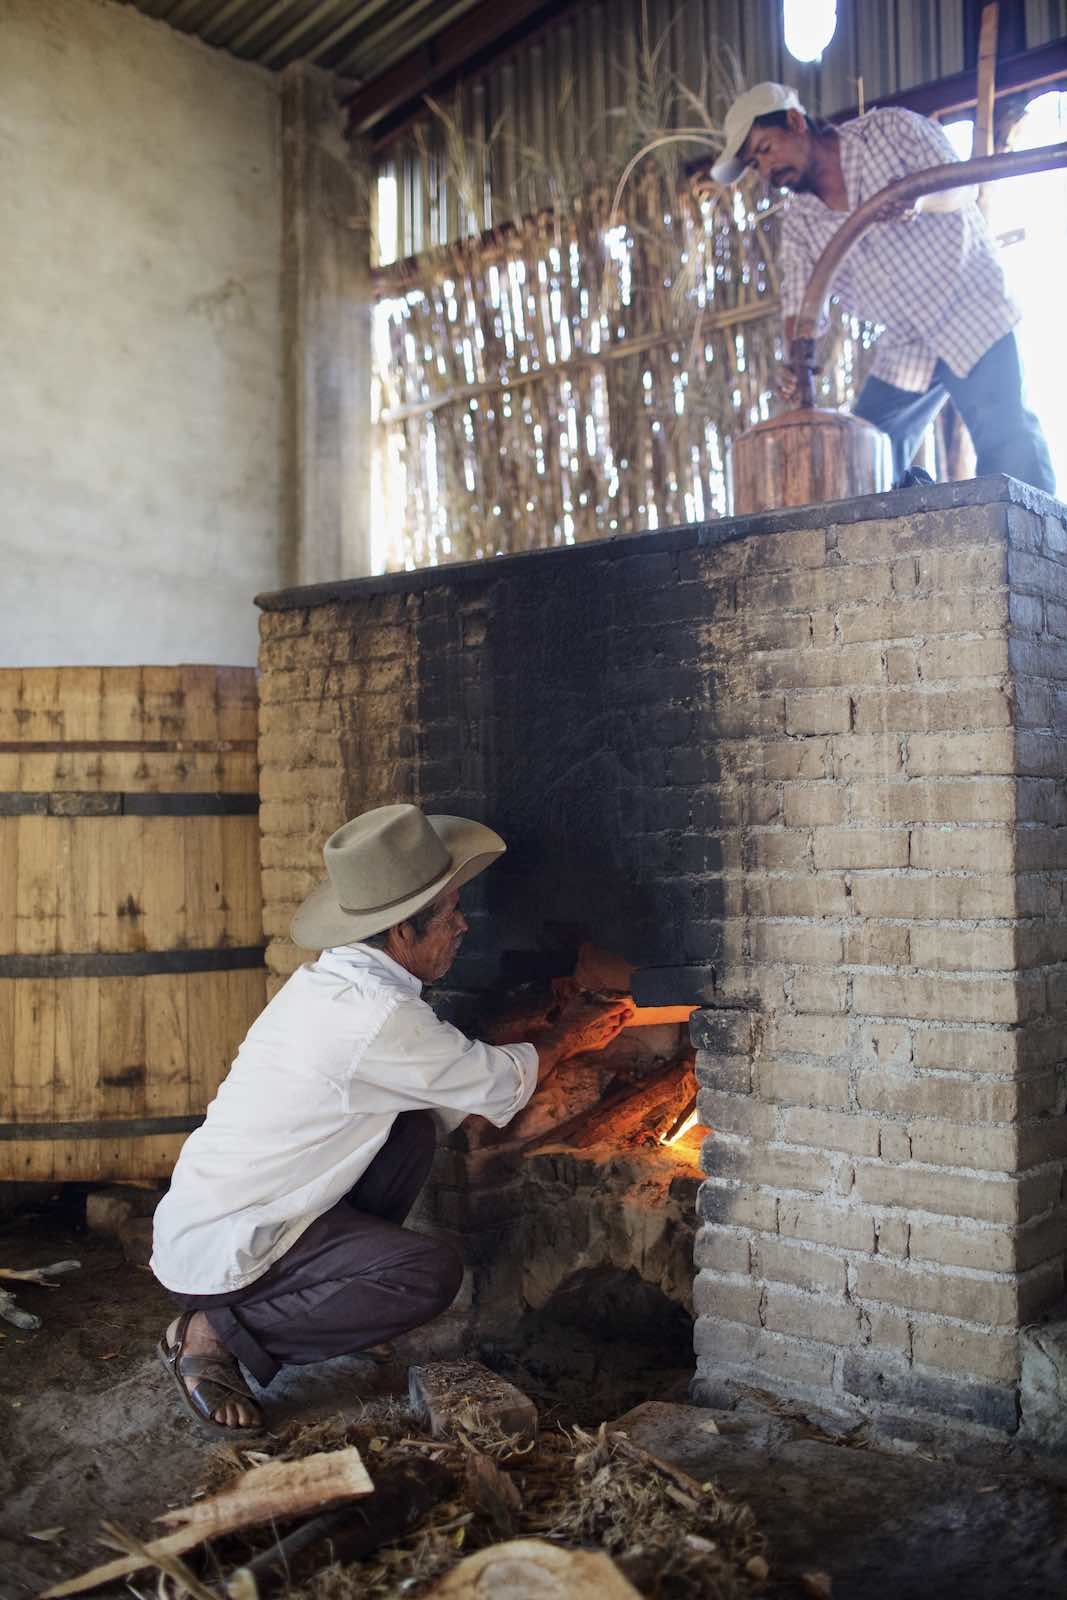 Jody Horton Photography - Farmer building a large fire within a brick oven.